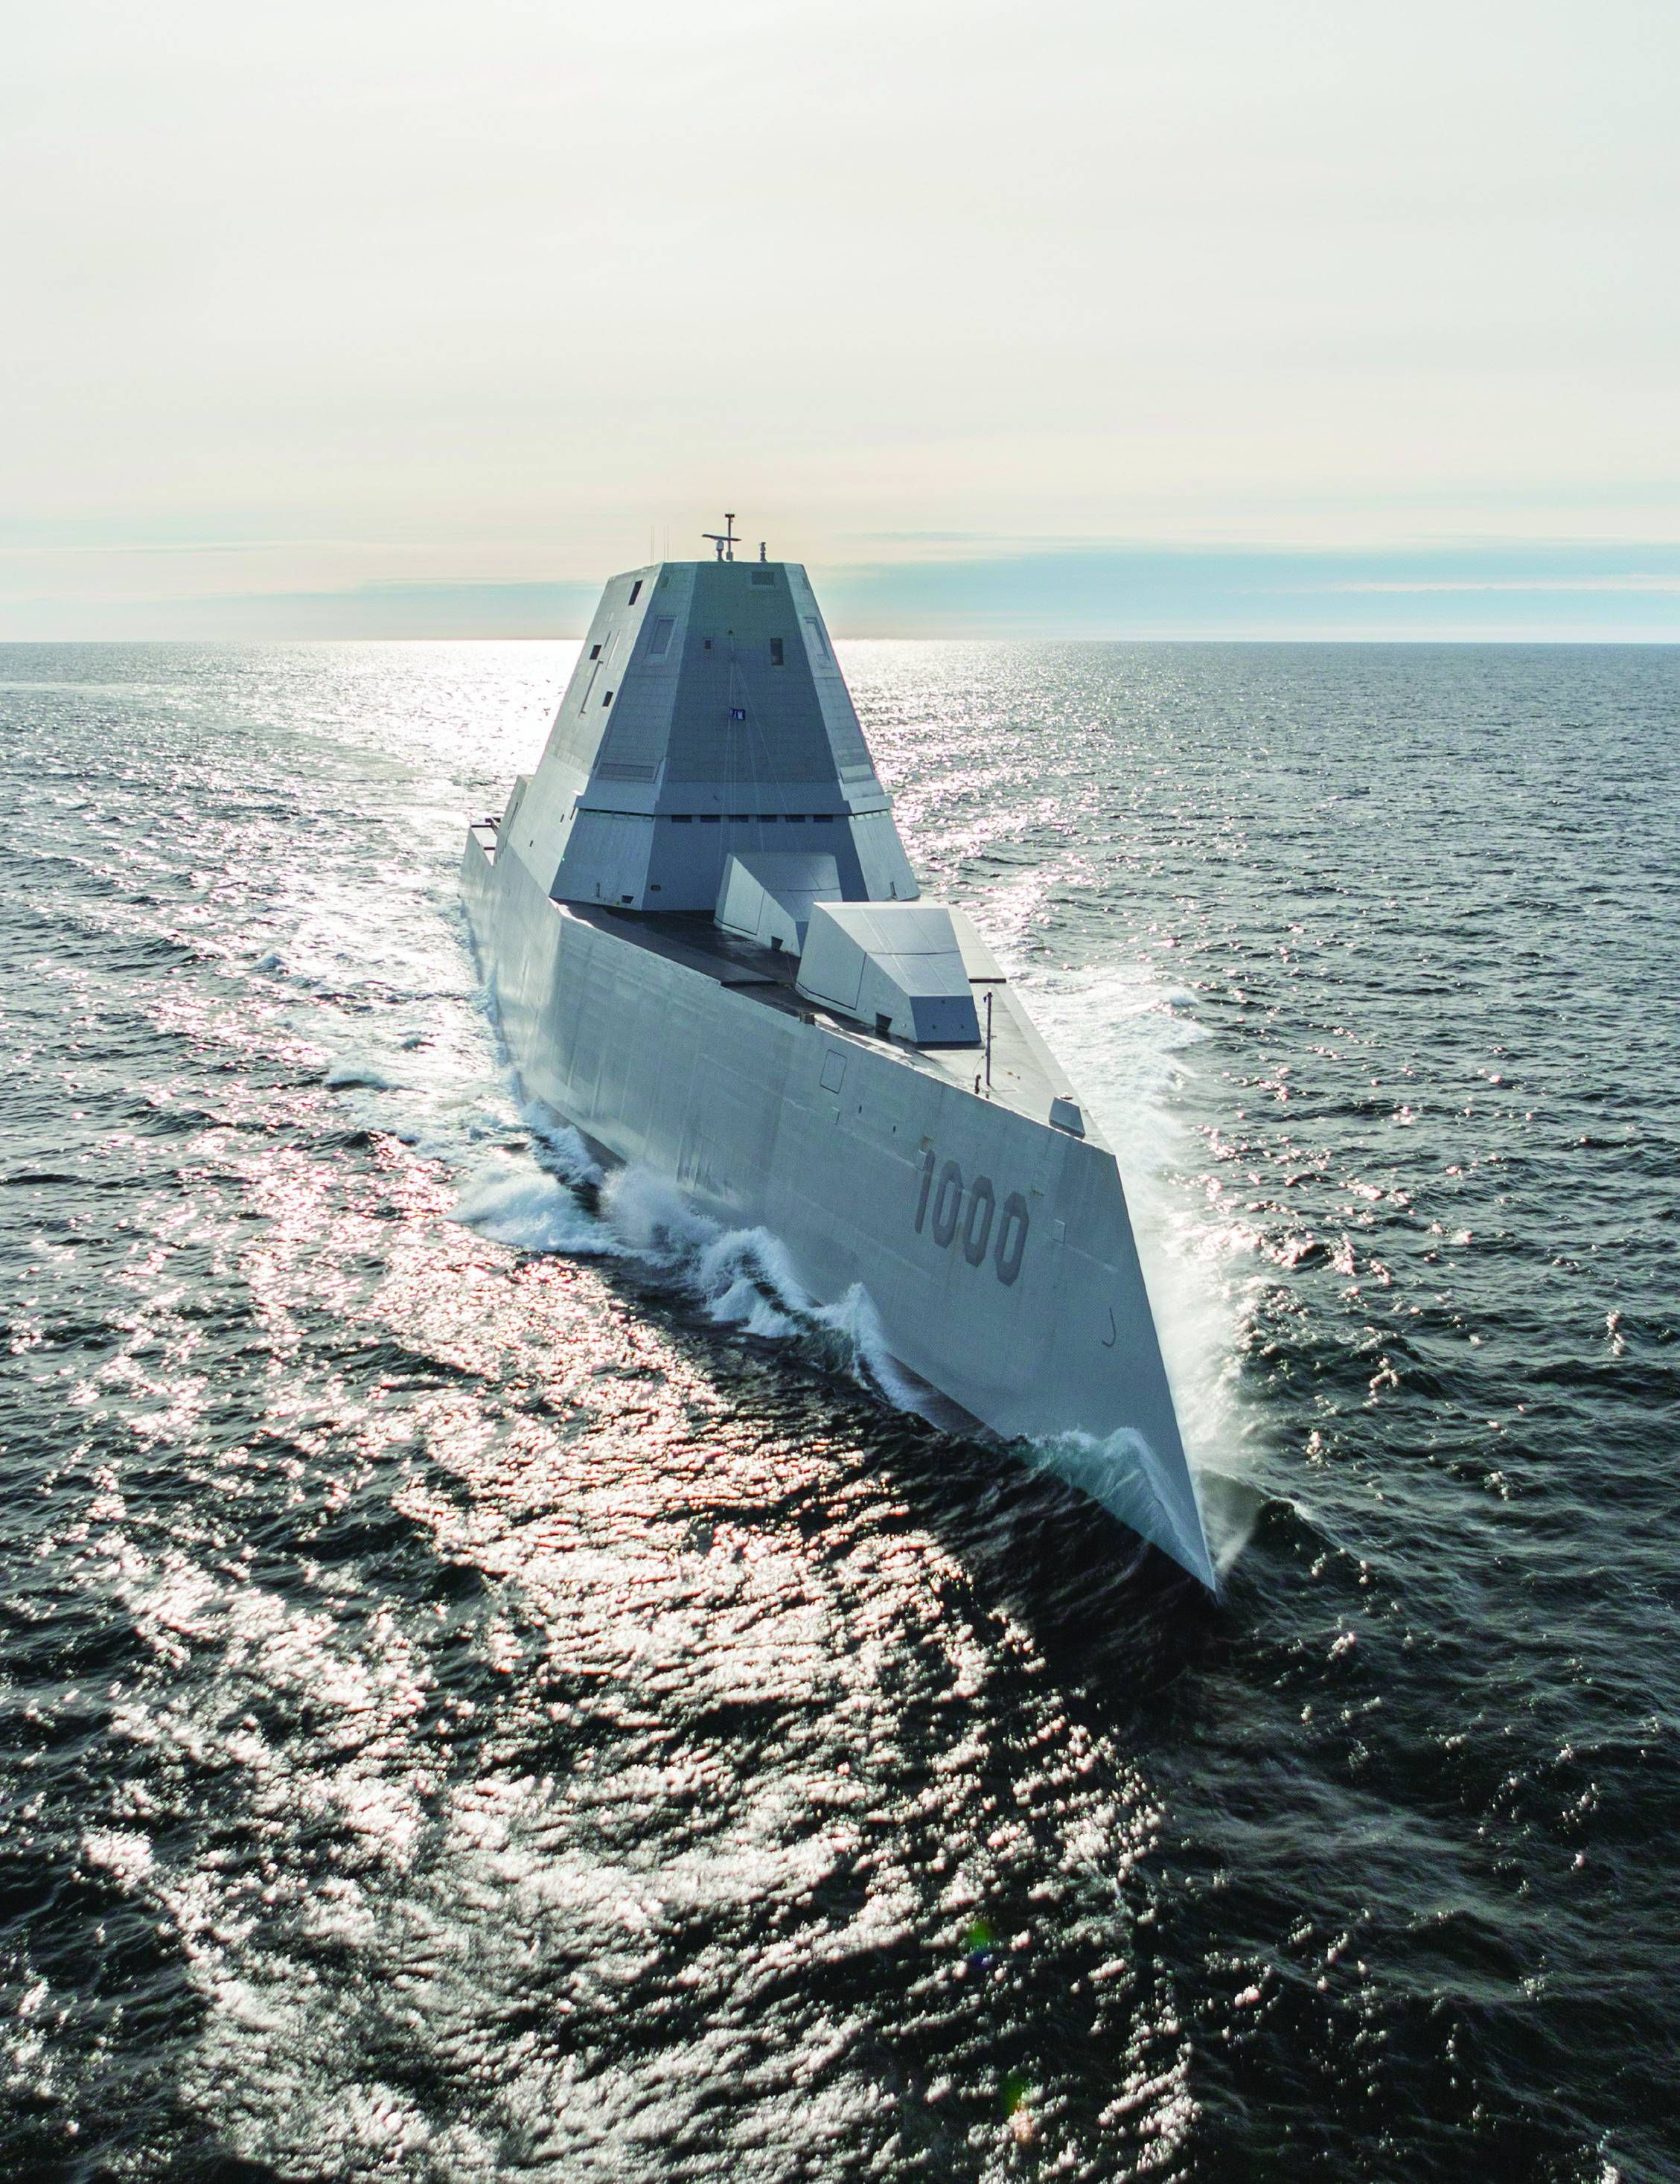 Uss zumwalt ddg sea power pinterest uss